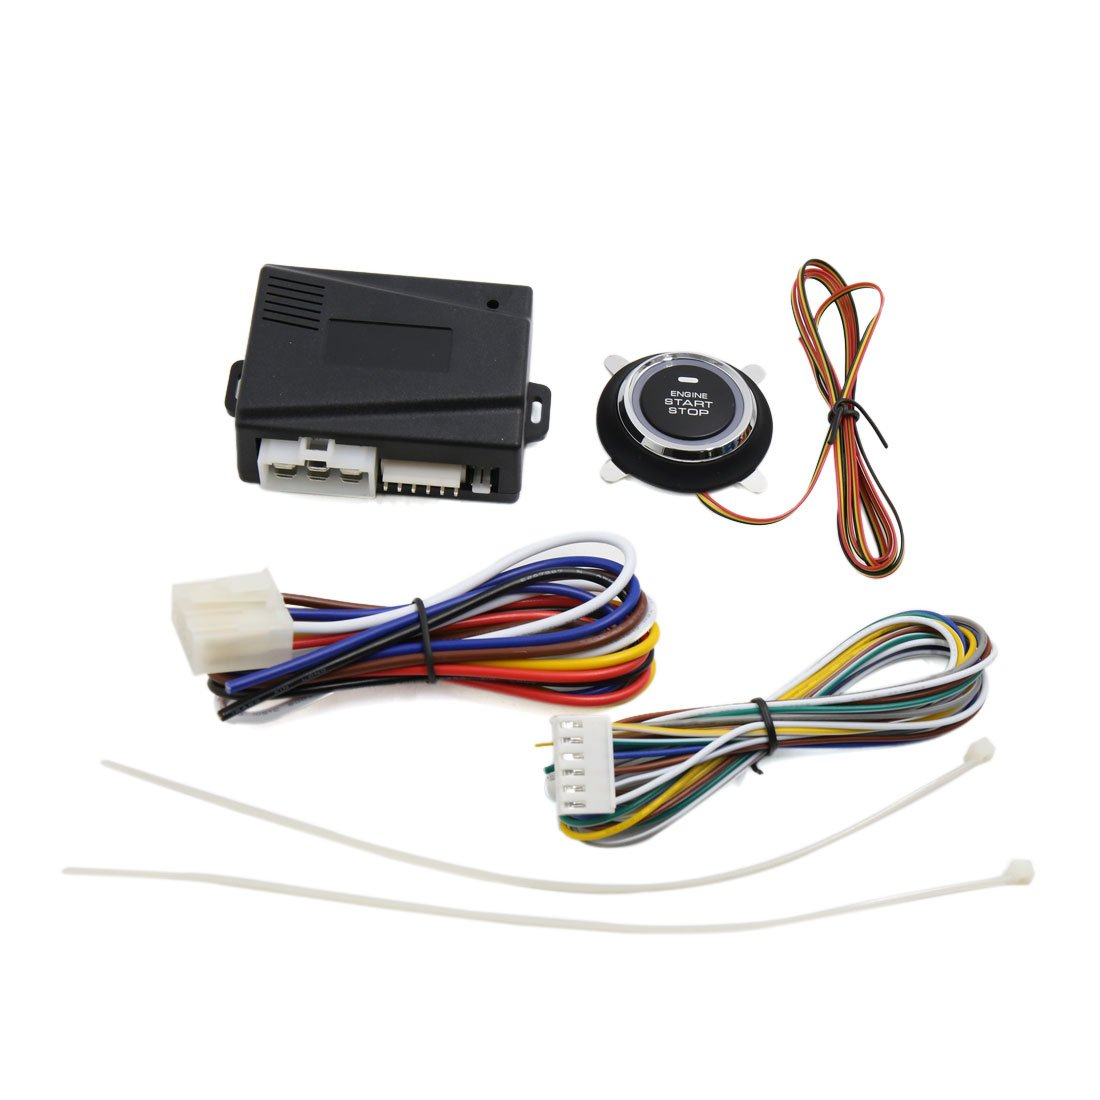 uxcell Universal Engine Start Stop System w/Push Button Device DC 12V